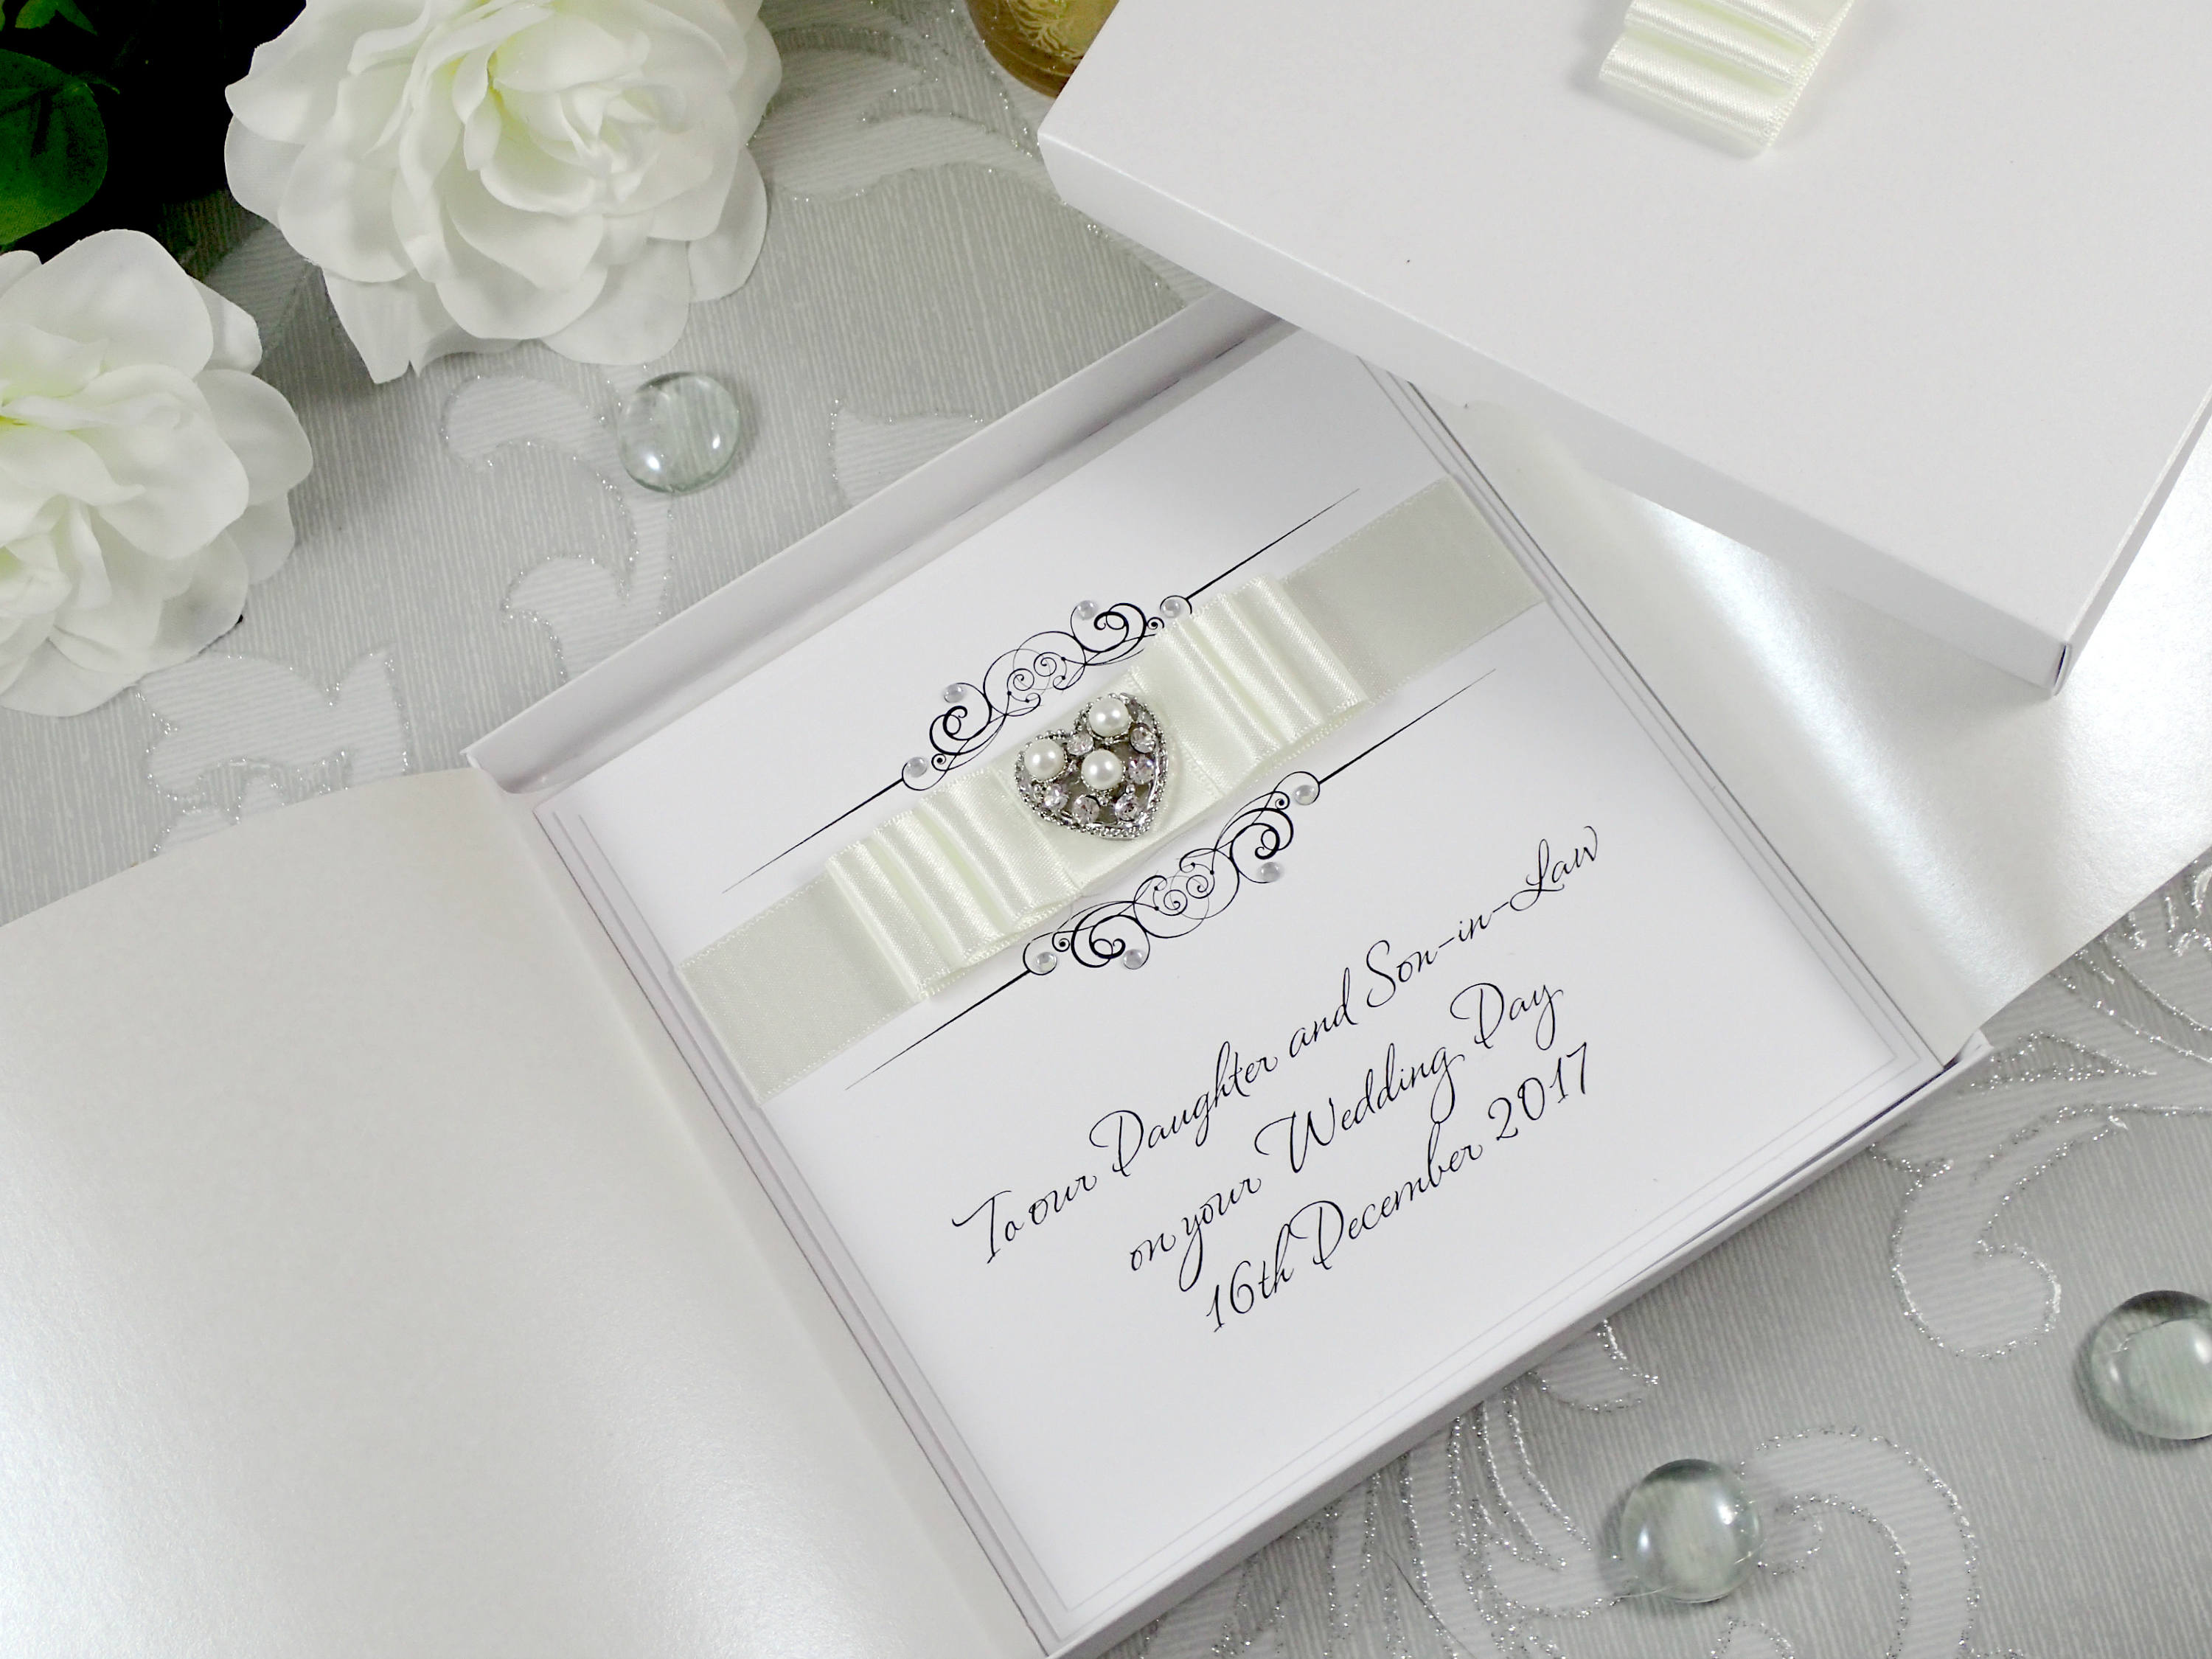 Daughter and Son In Law Wedding Card Luxury Wedding Card